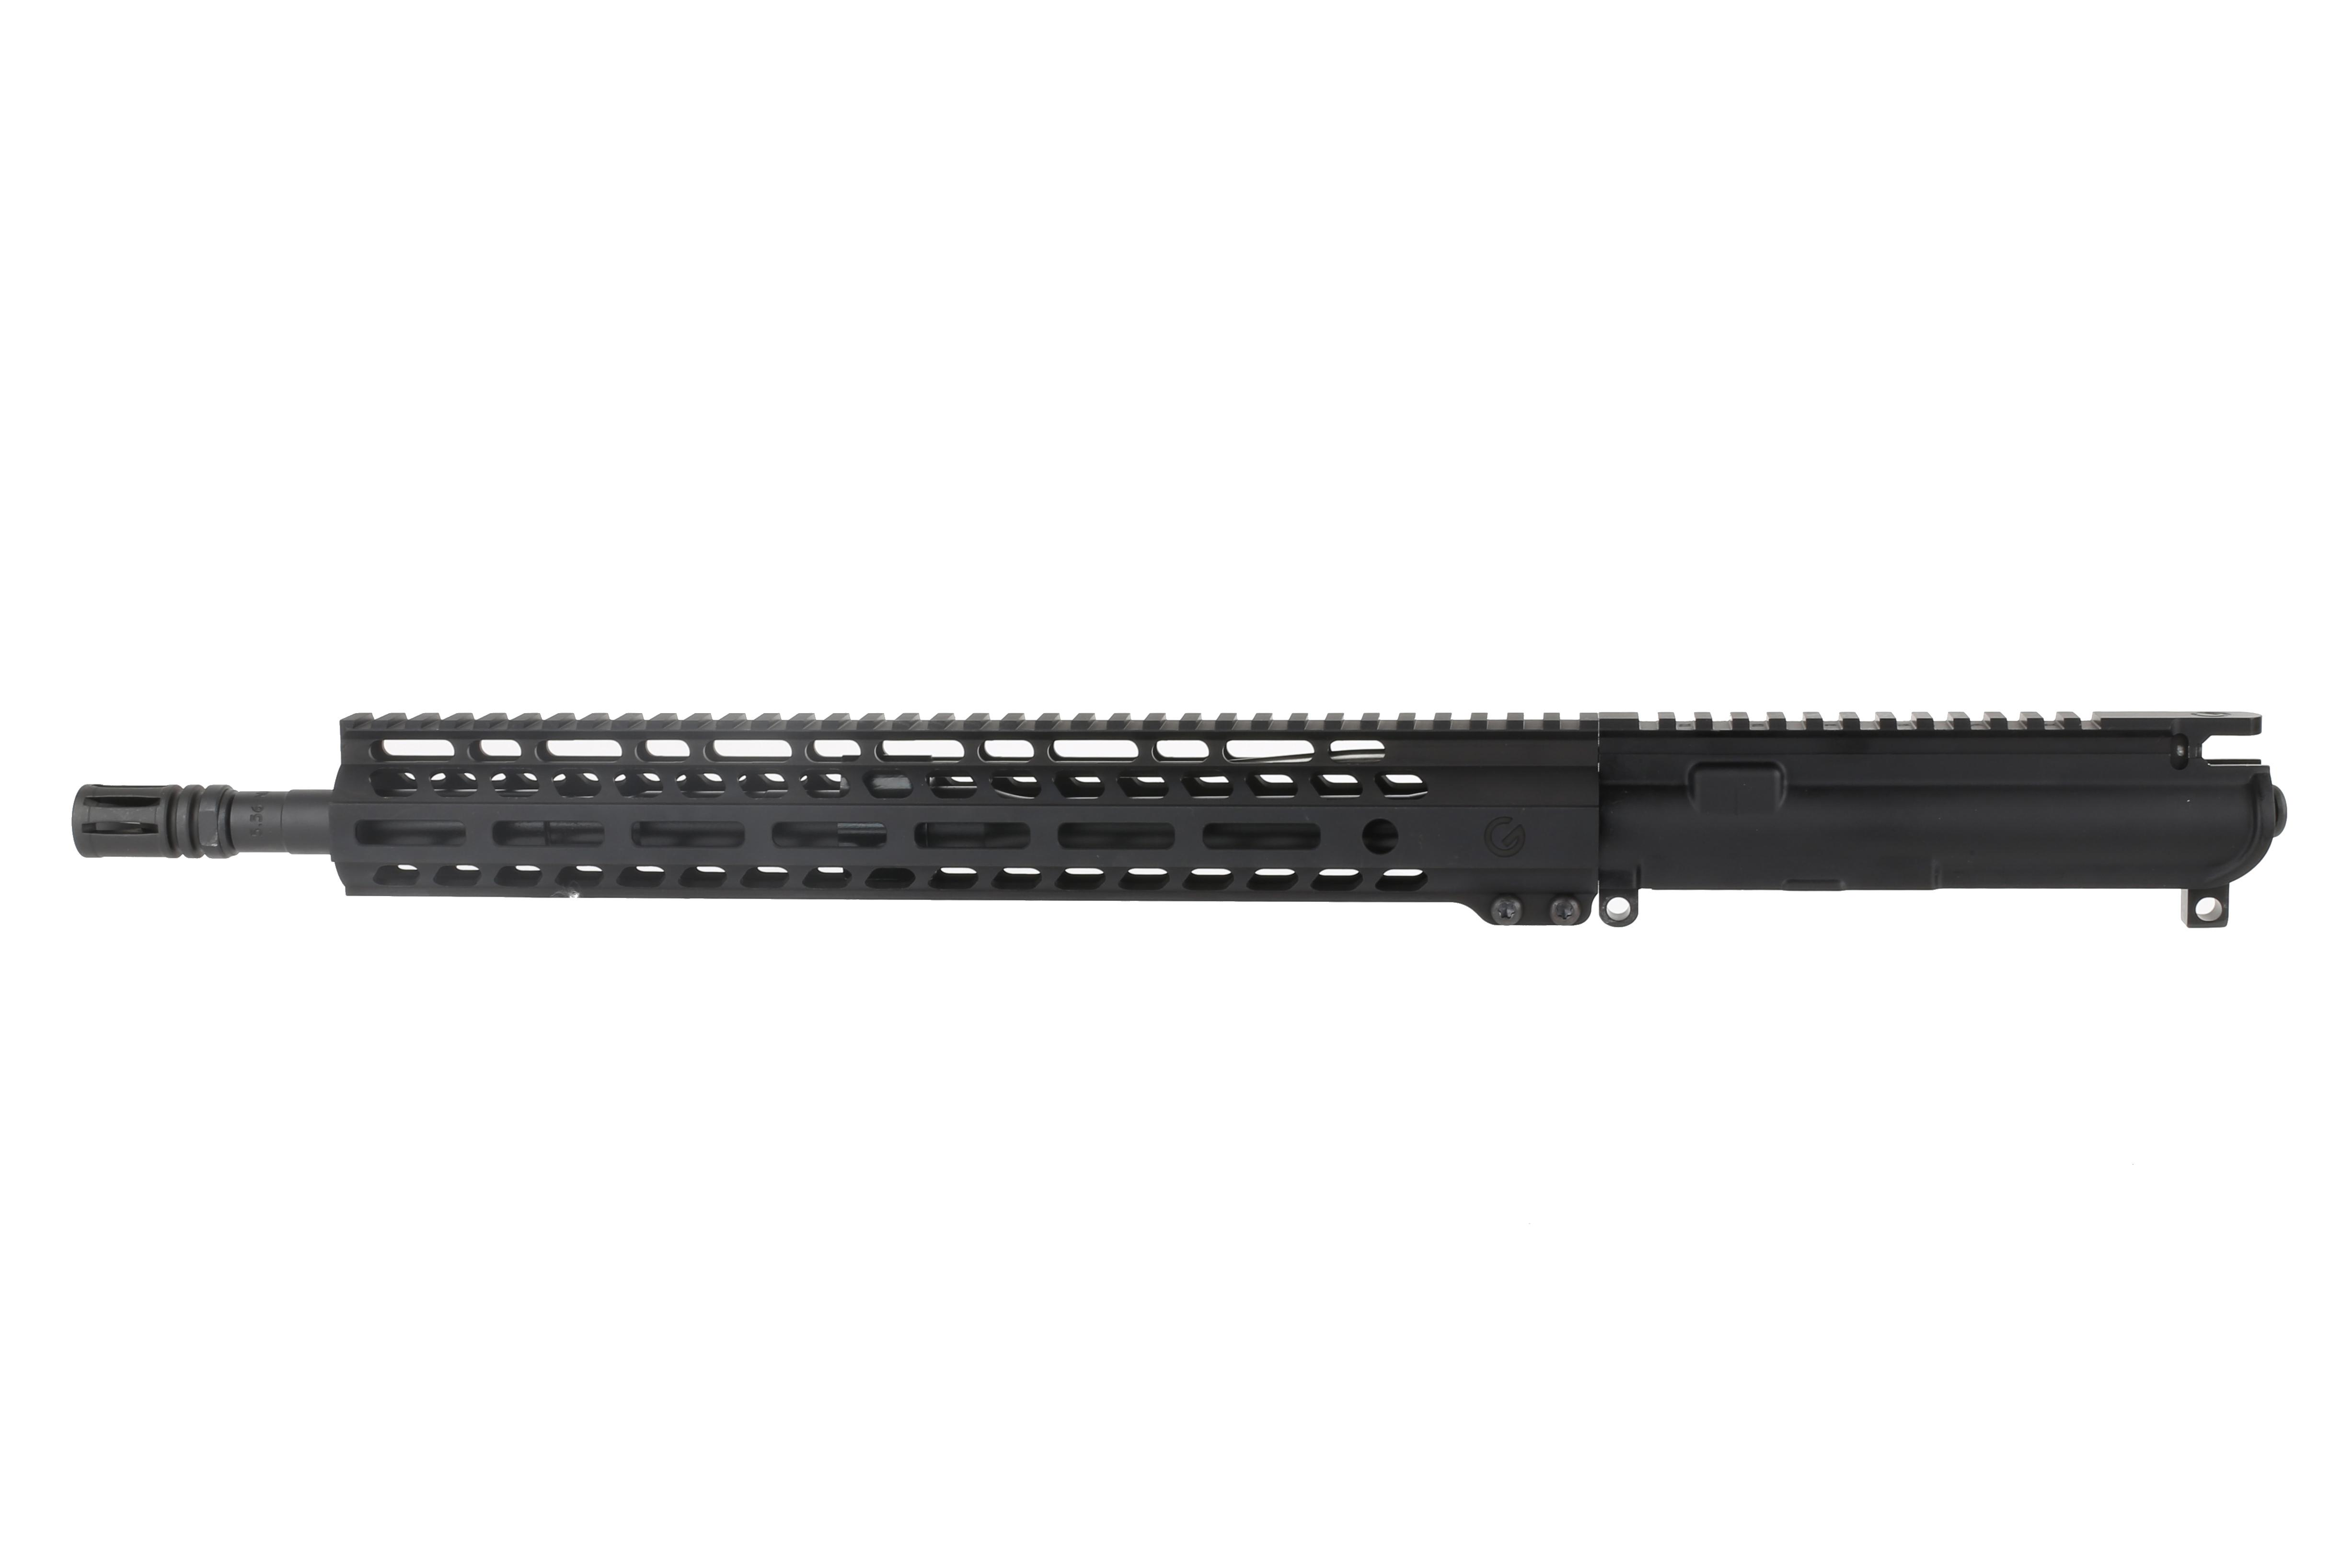 The 5.56 ar-15 barrel included in this kit is made from 4150 chrome moly vanadium steel and has an a2 flash hider